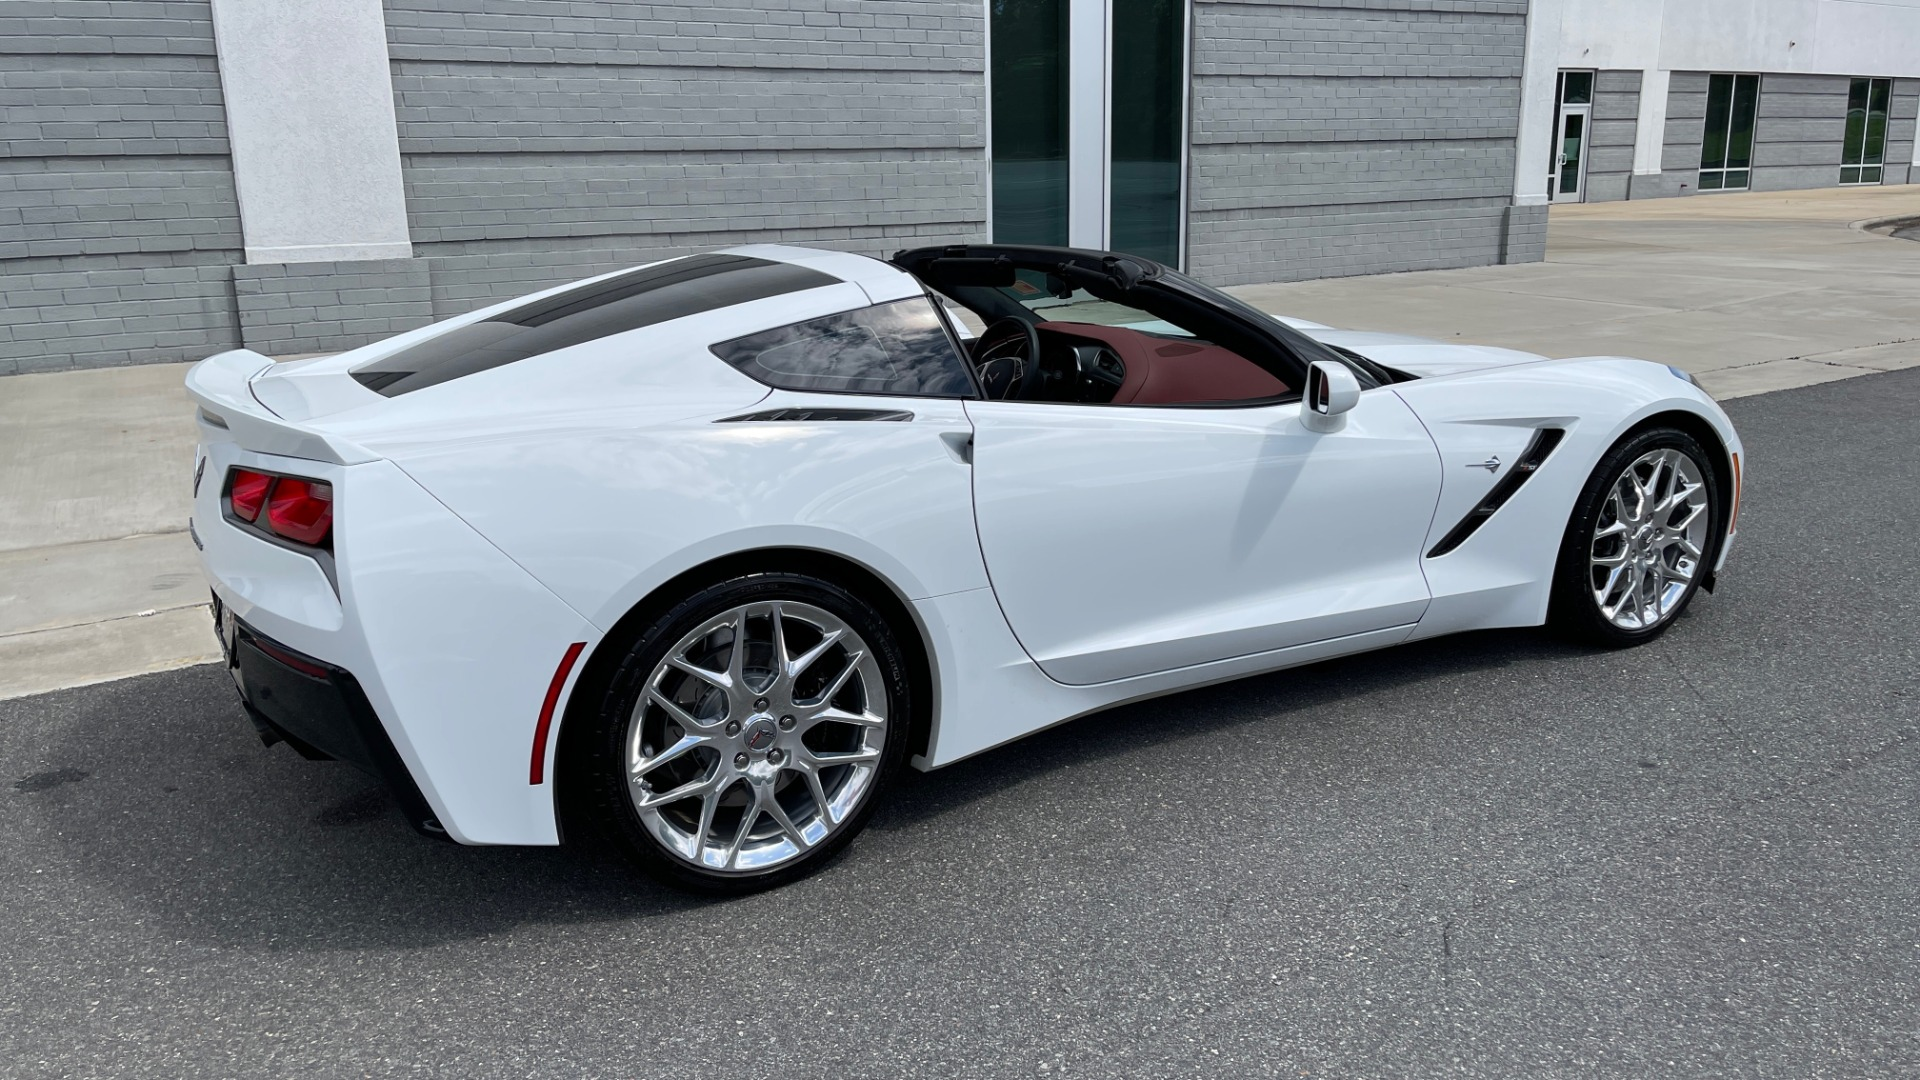 Used 2016 Chevrolet CORVETTE C7 STINGRAY COUPE Z51 3LT / NAV / PERF TRACTION MGMT / REARVIEW for sale Sold at Formula Imports in Charlotte NC 28227 8